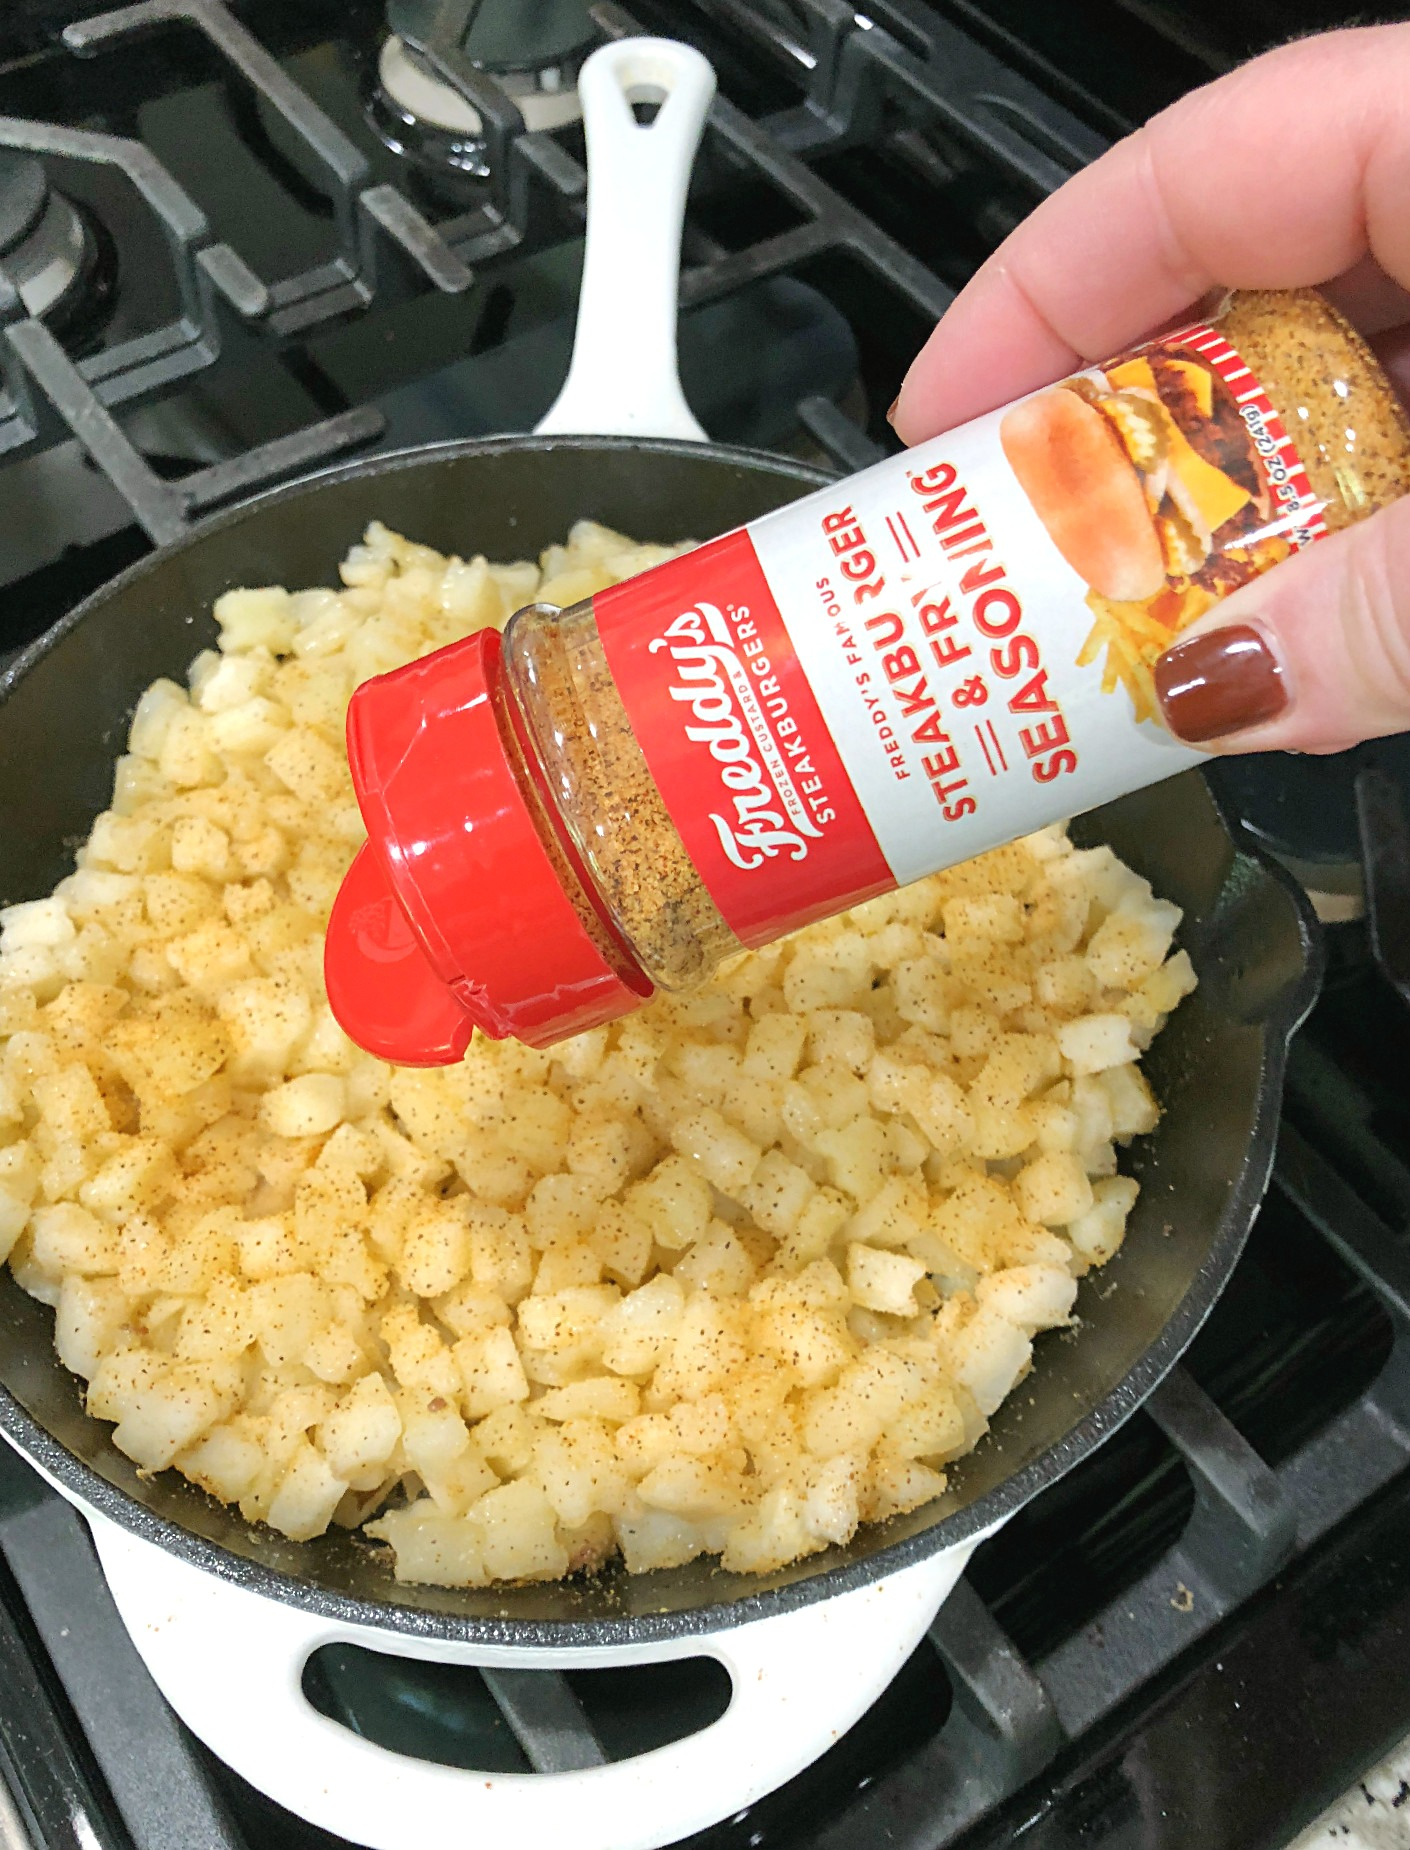 hamburger hashbrown skillet - Freddy's seasoning being shaken into skillet with cubed hashbrown potatoes